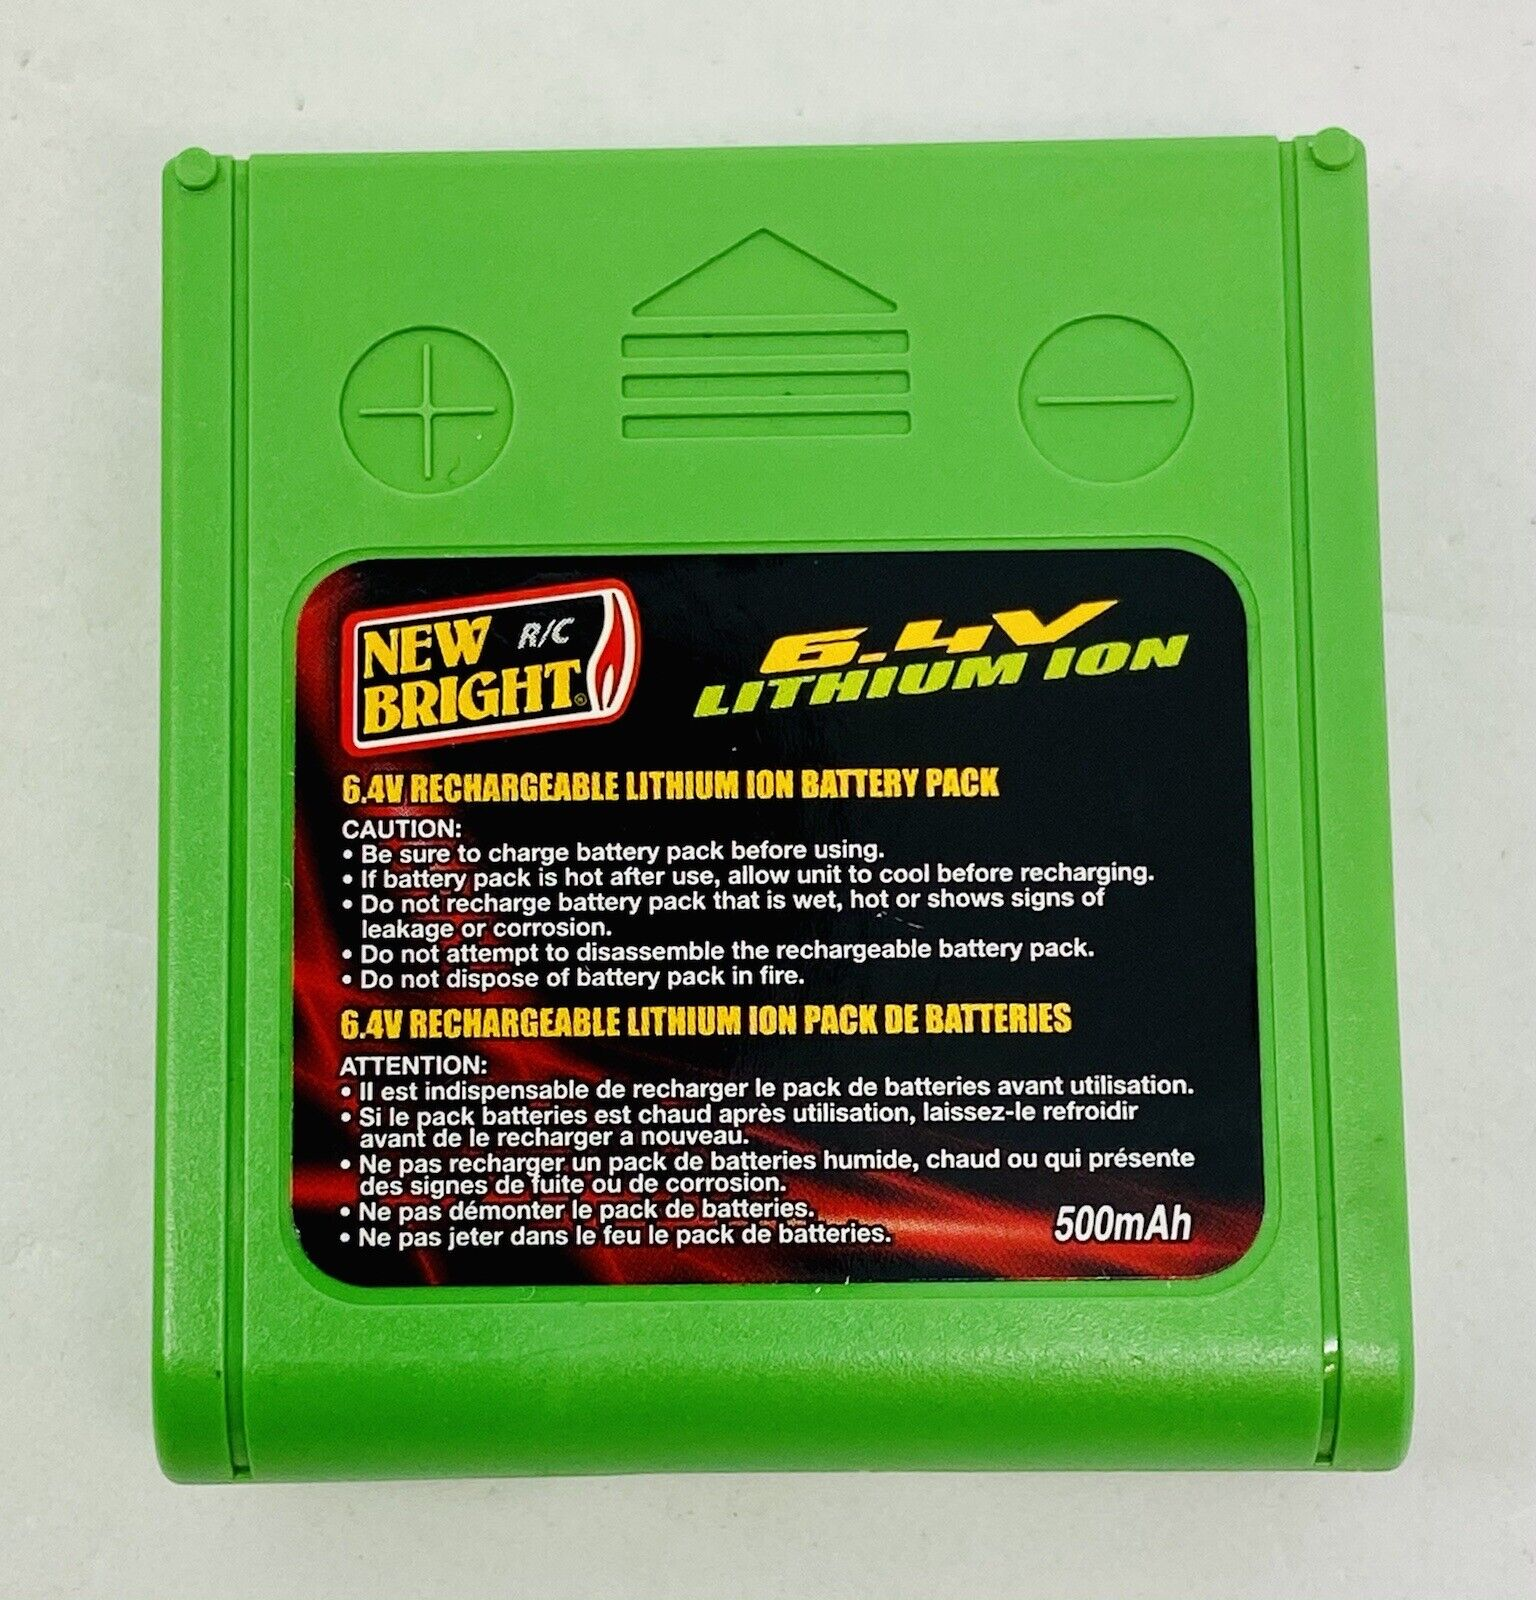 6.4V 500mAh New Bright Rechargeable Battery Pack RC Lithium Ion - Used